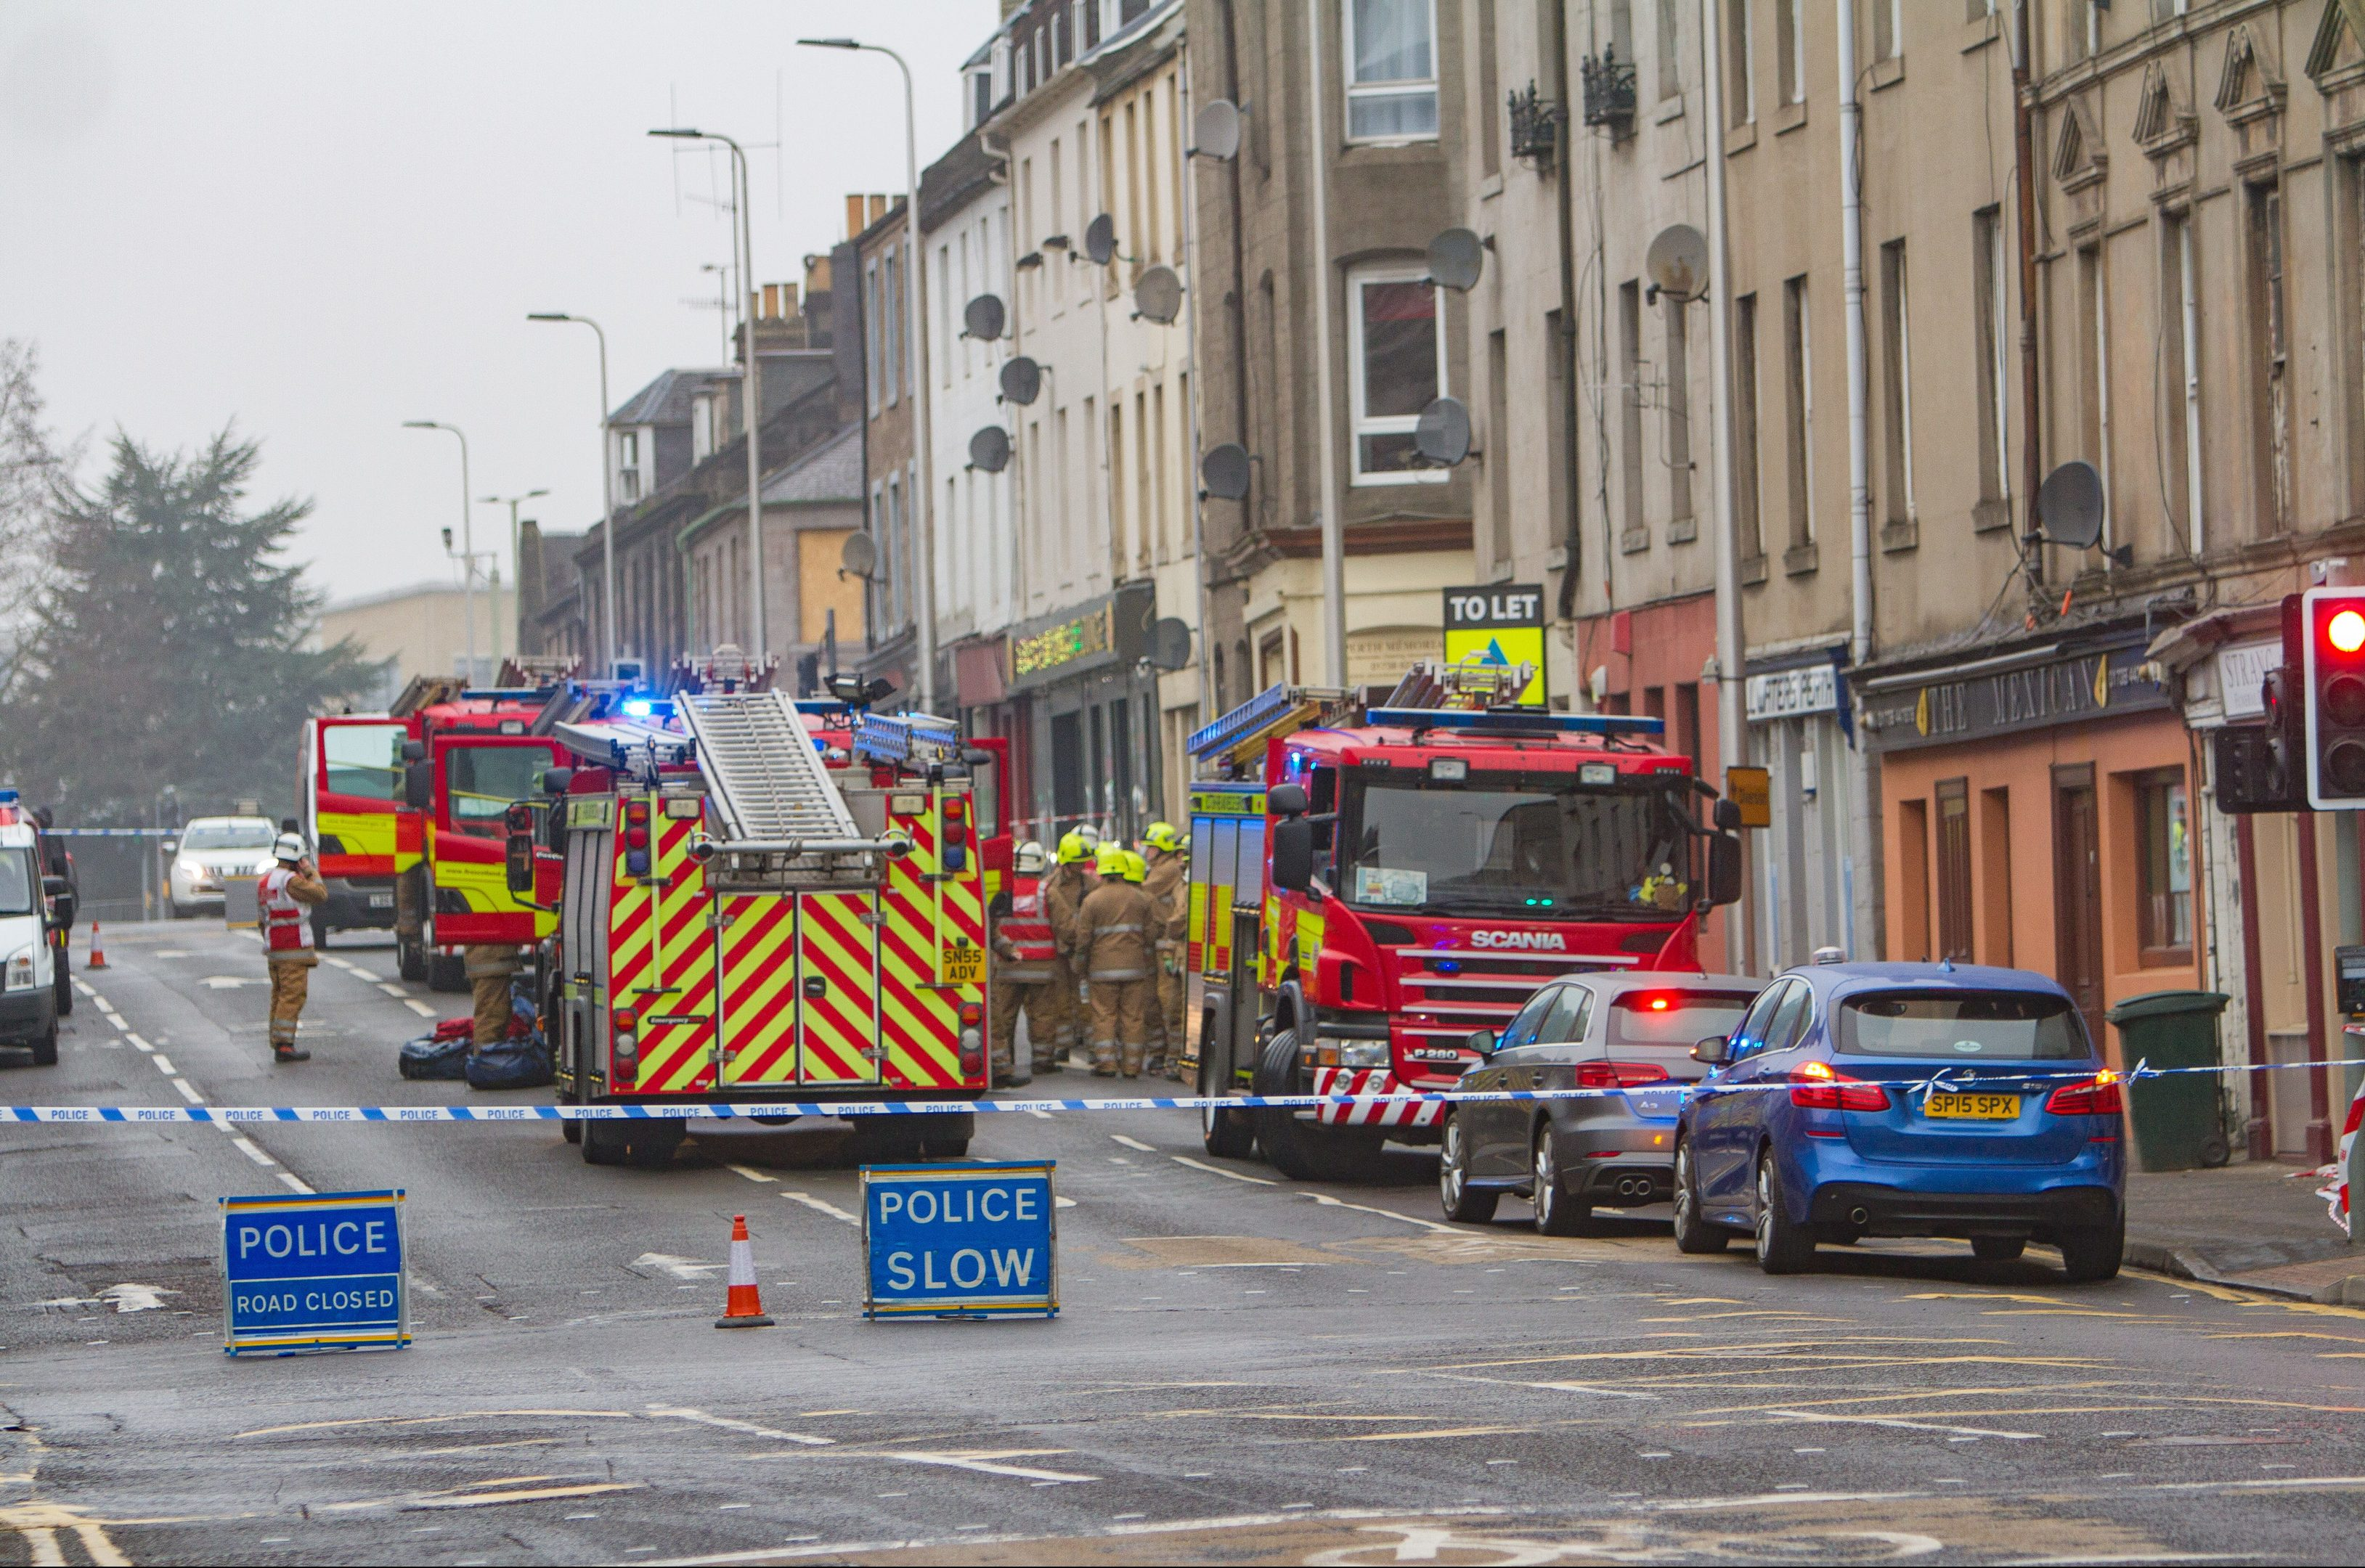 The scene of the collapse in Atholl Street which sparked calls to revamp derelict city centre buildings.